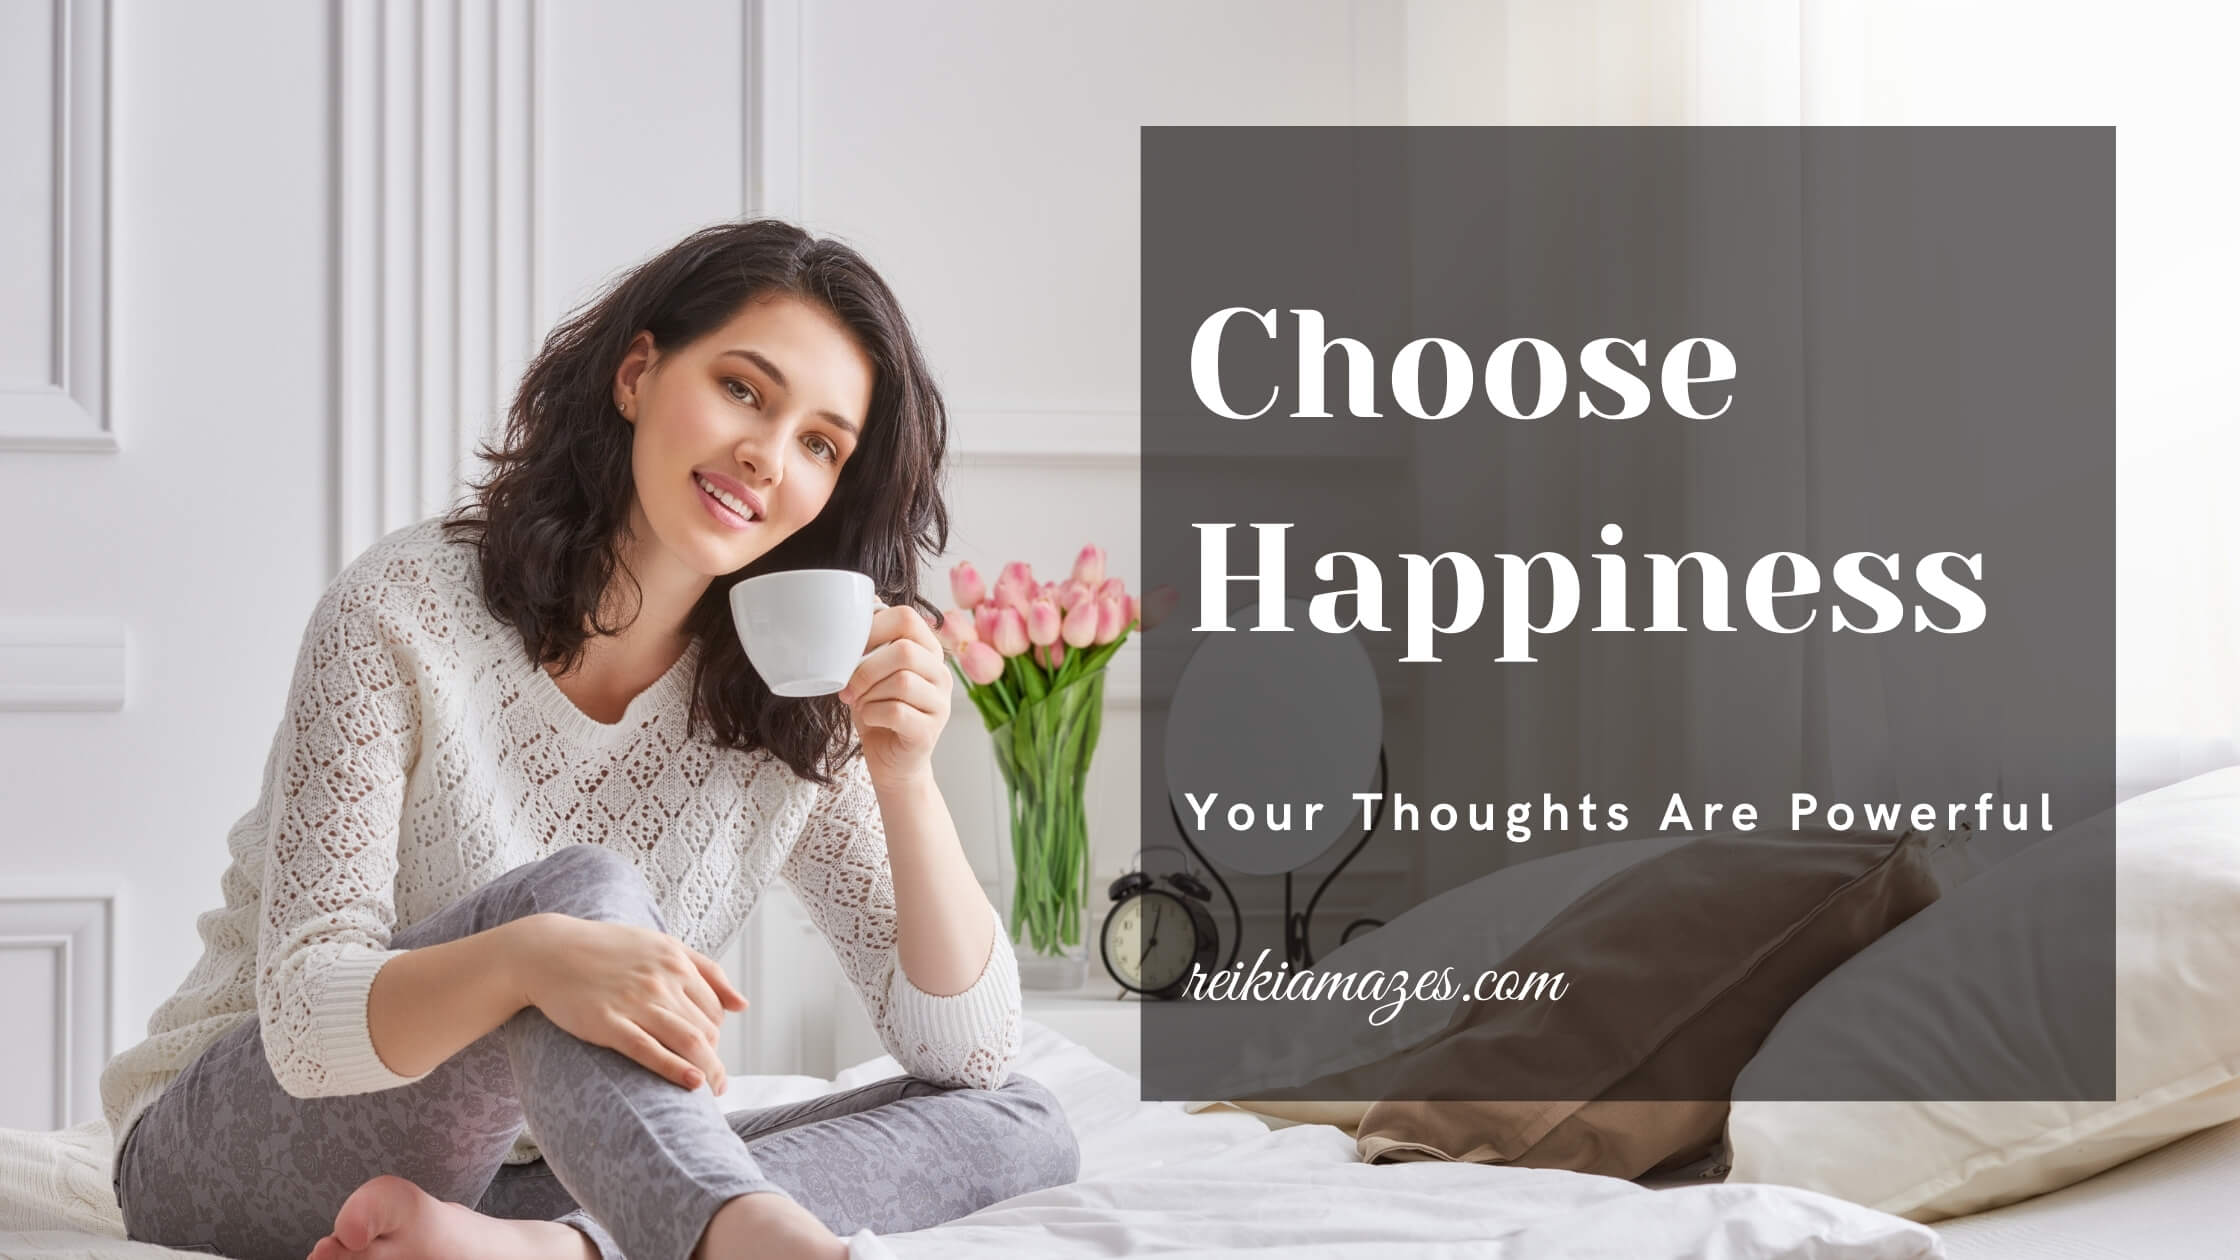 Your Thoughts Are Powerful-RA Blog Banner (1)